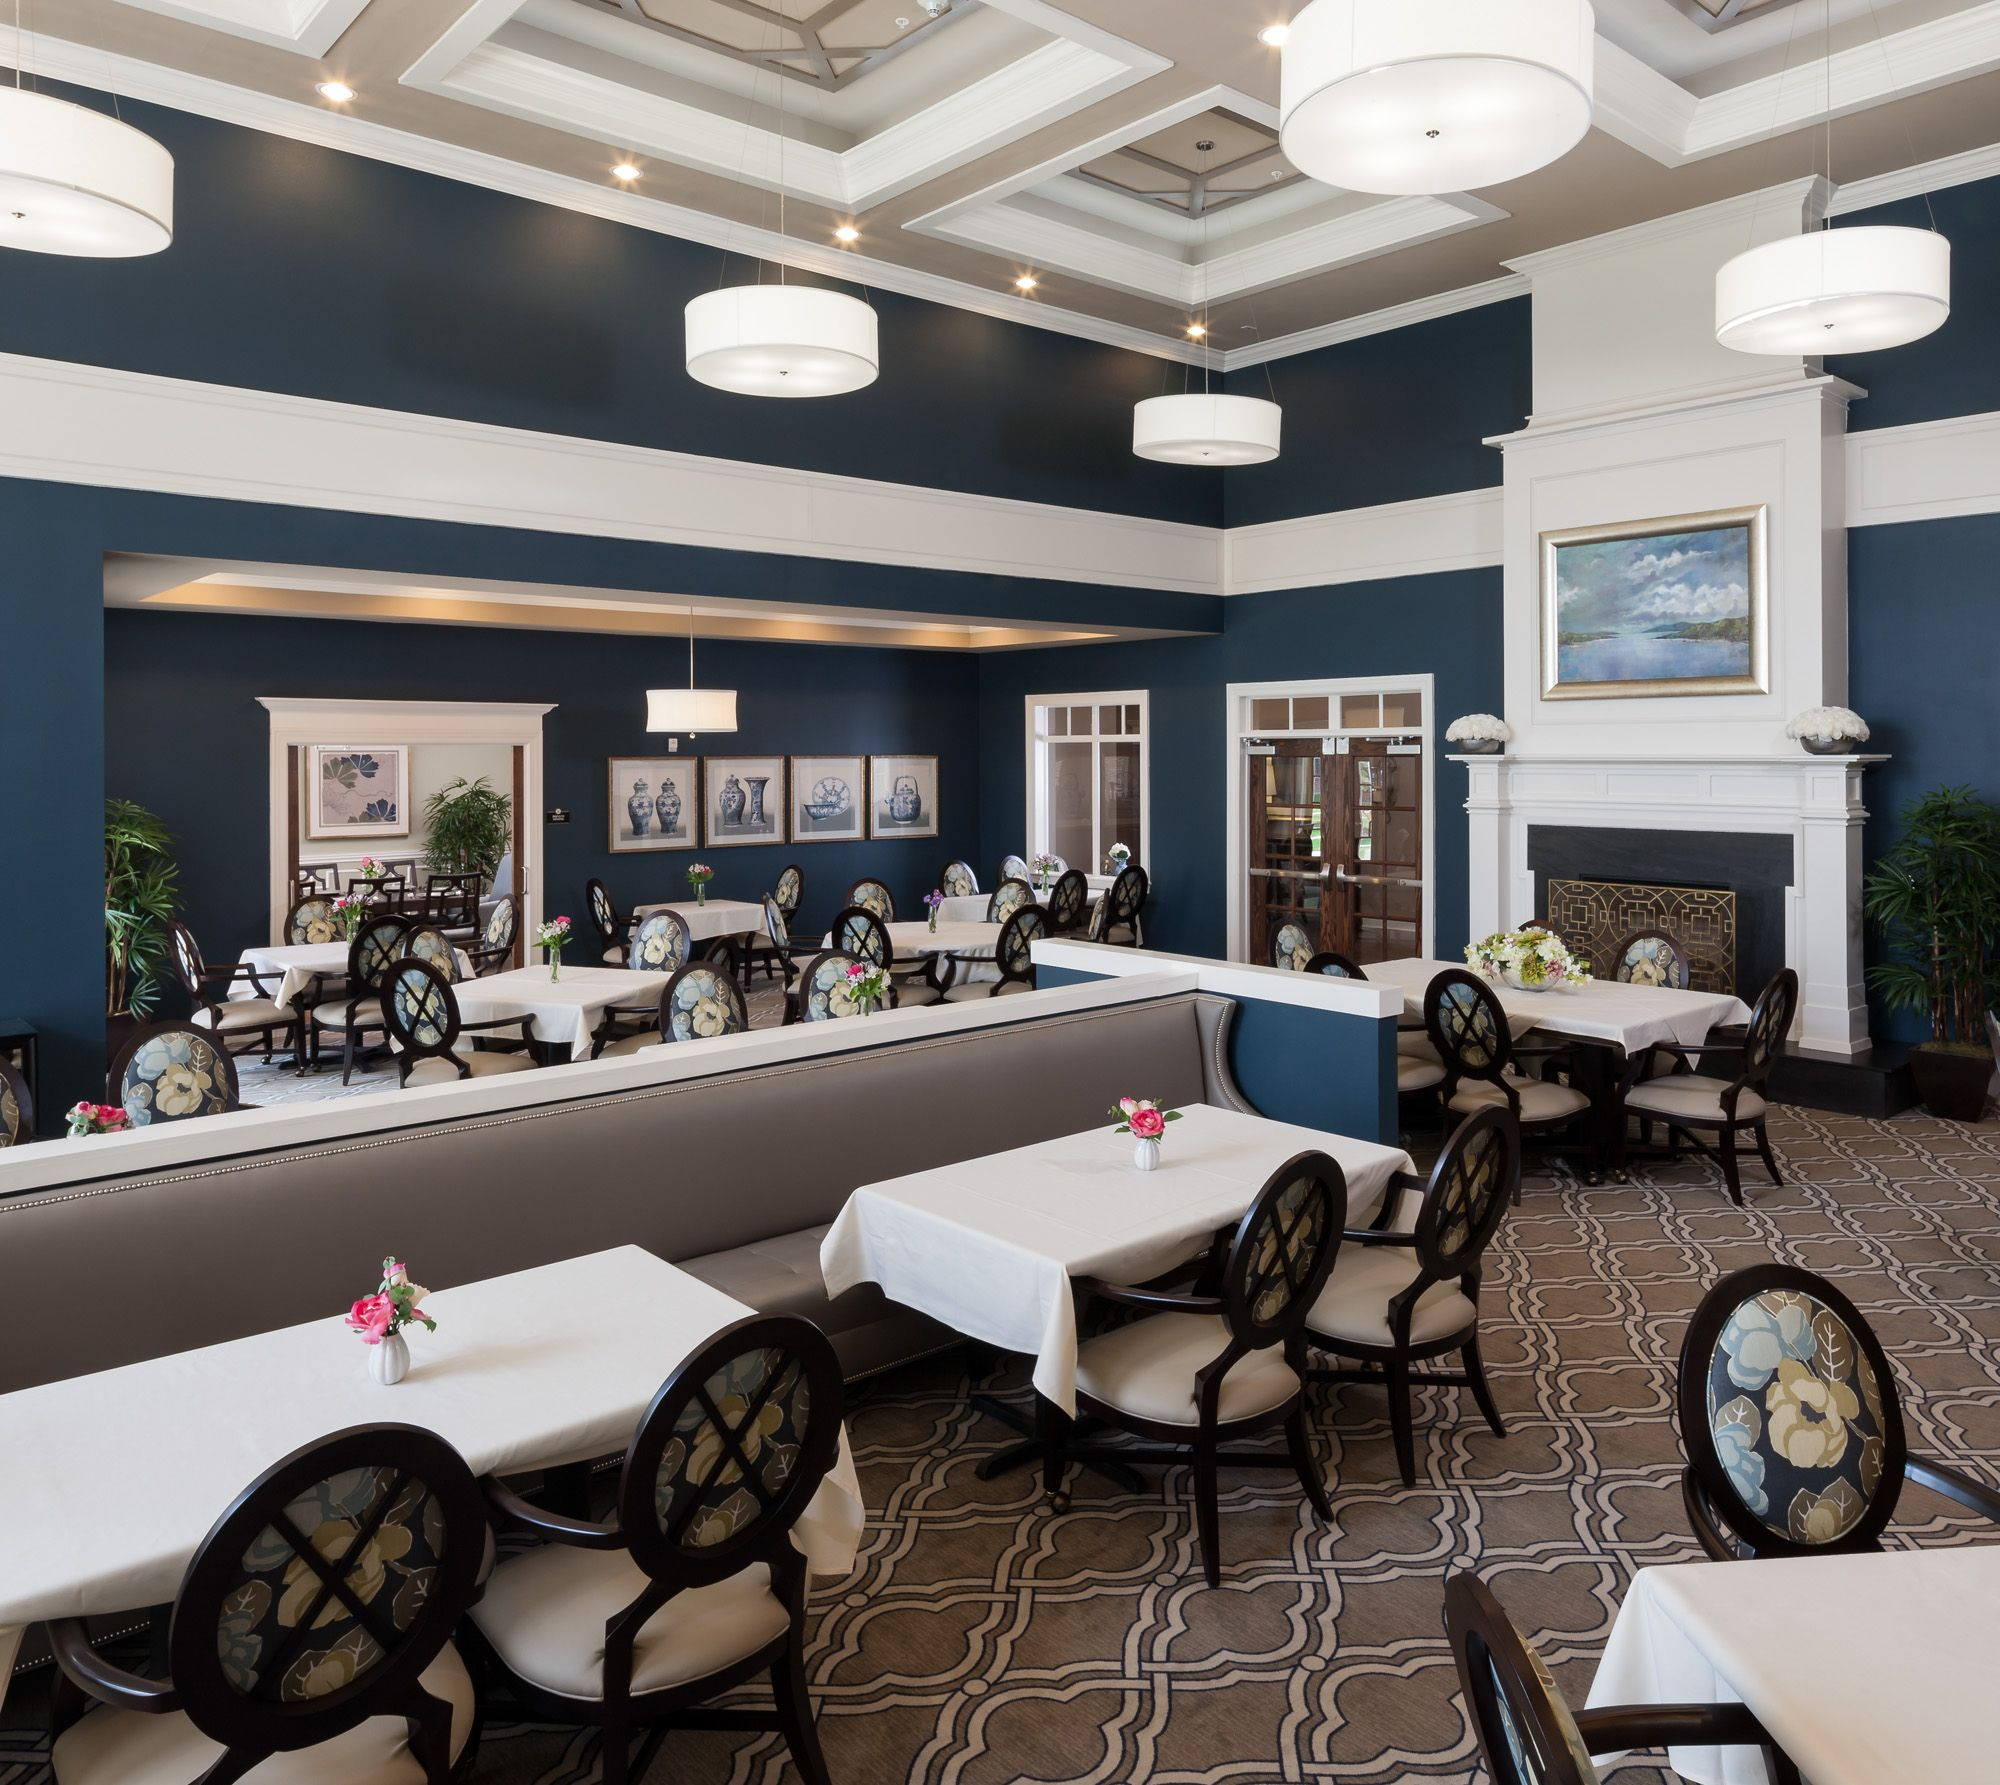 Senior Living Designed by Faulkner Design Group #diningroom